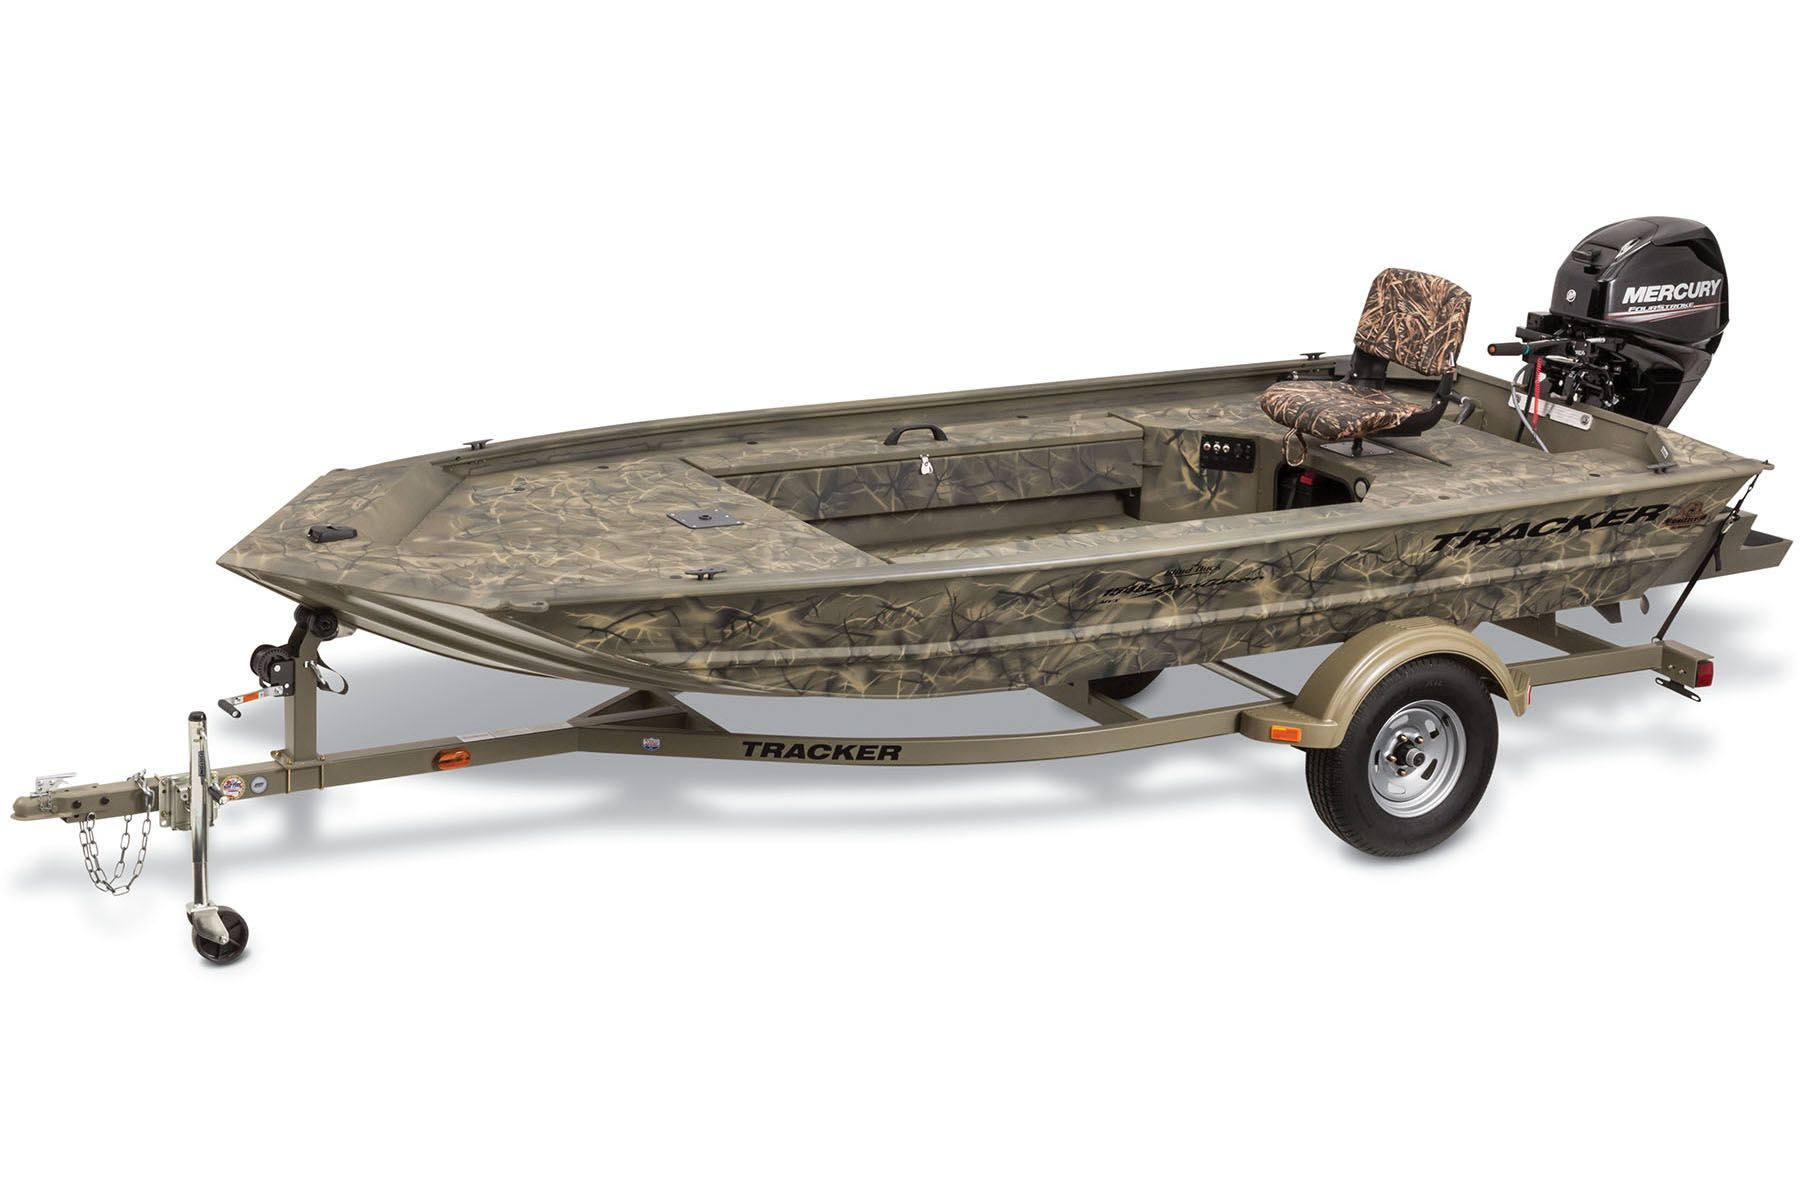 Tracker Grizzly AllWelded 1548 Sportsman Boat Available